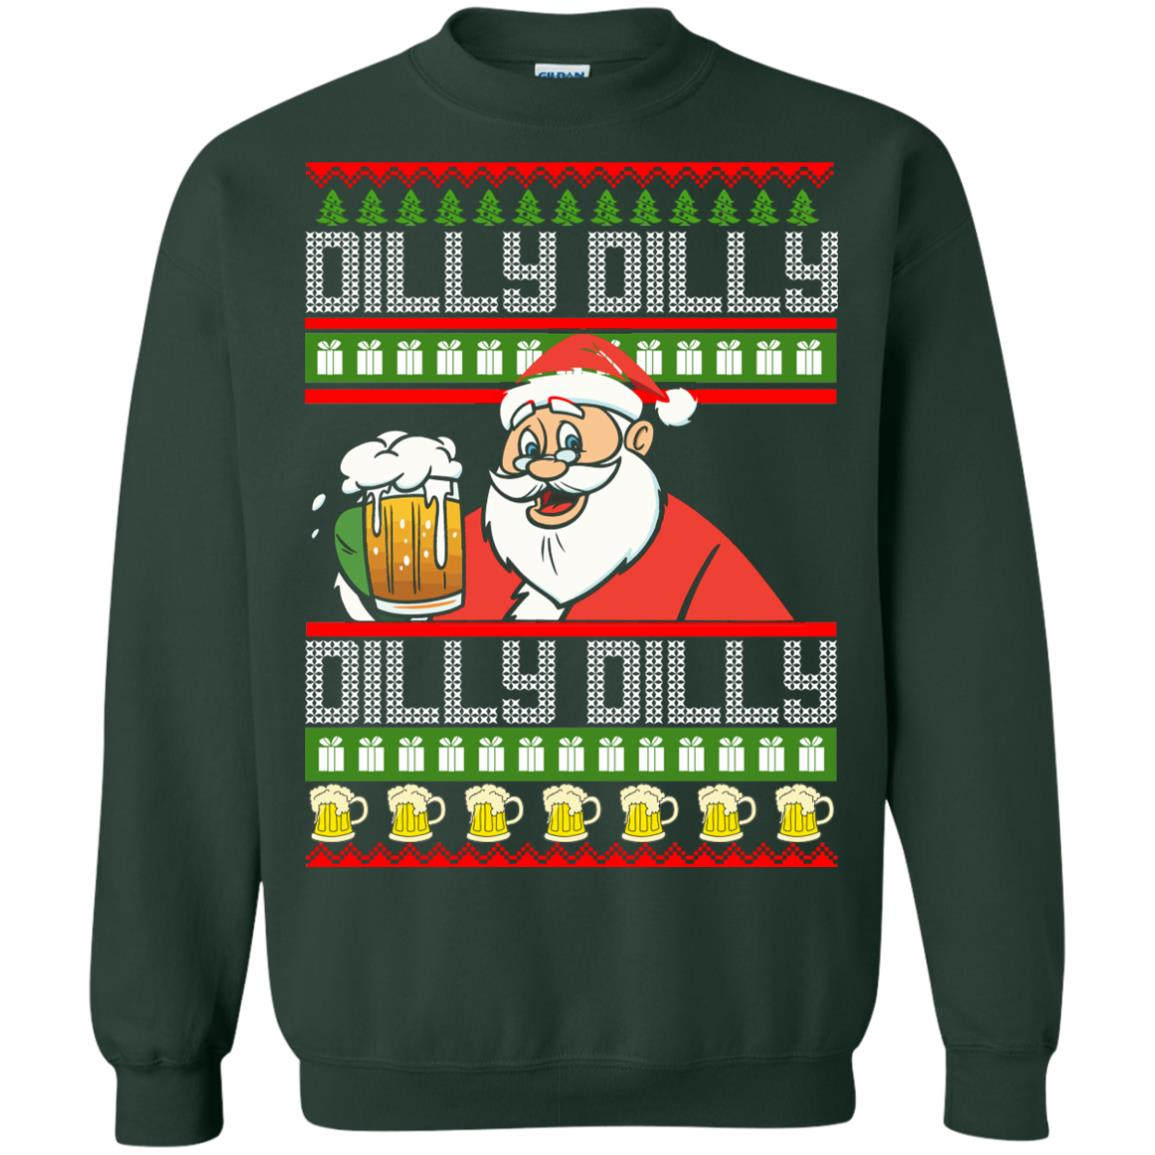 image 4191 - Dilly Dilly Christmas Sweater, Shirt, Hoodie